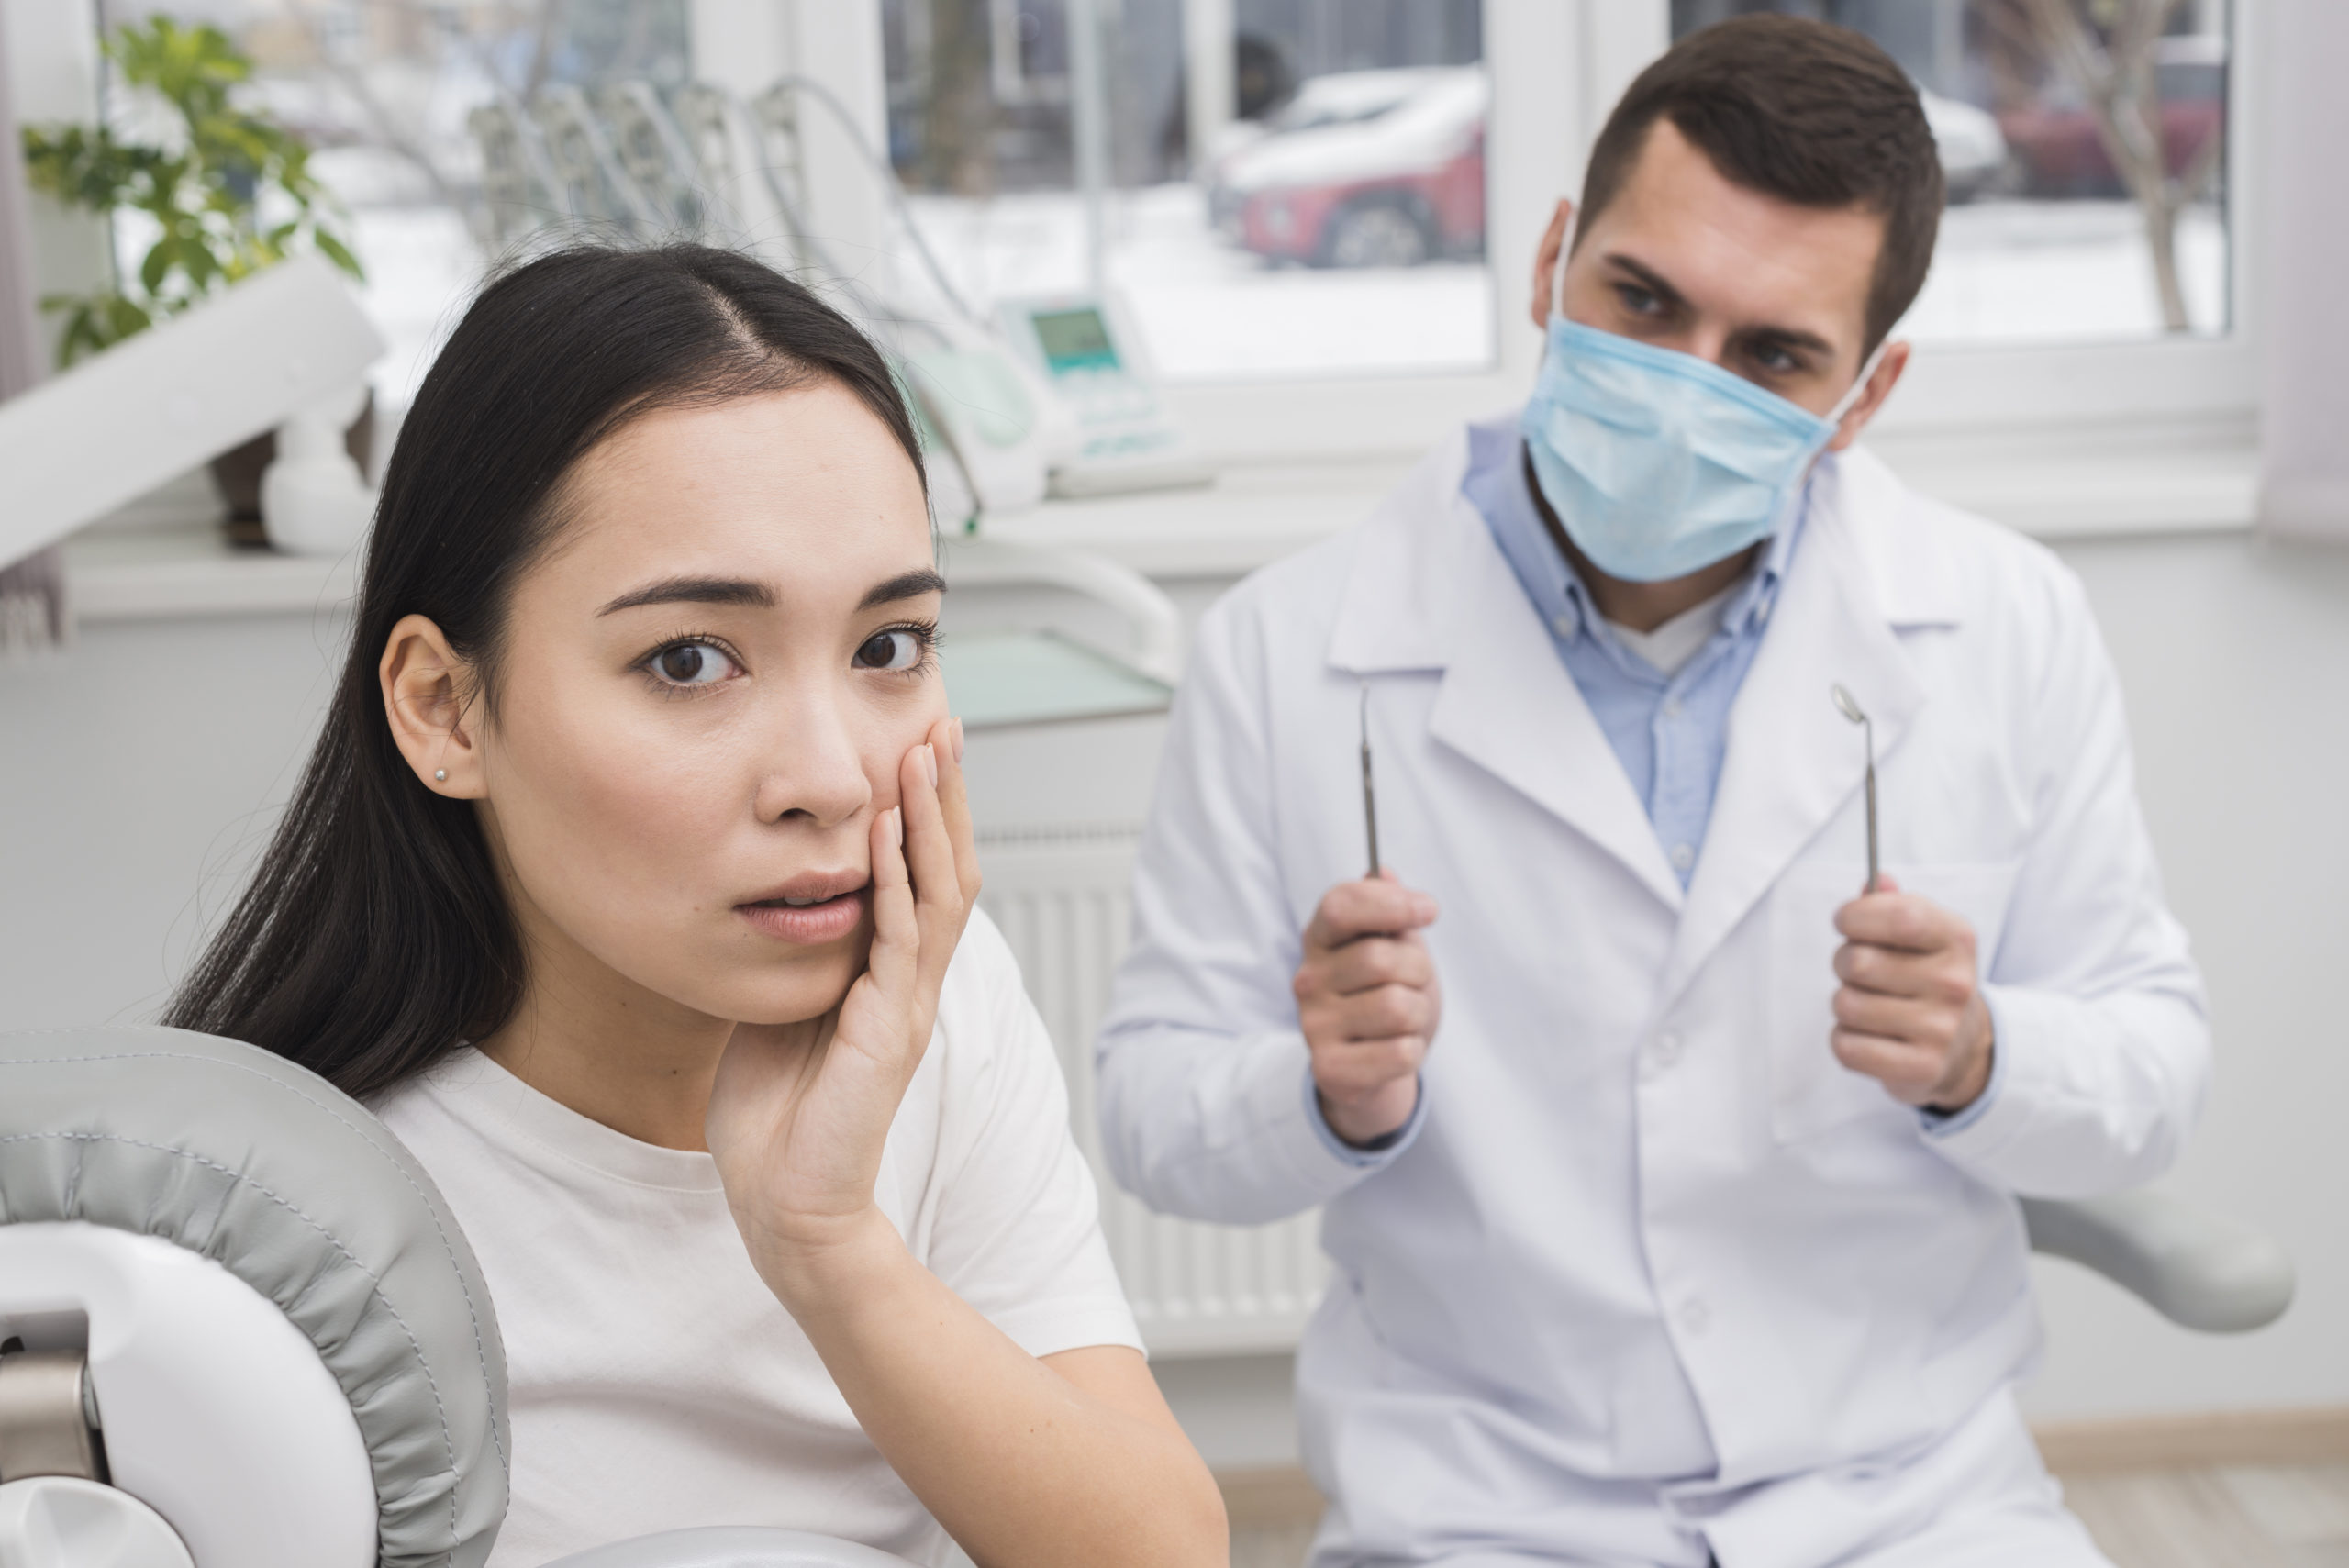 Does an extraction hurt? Kensington Court Clinic